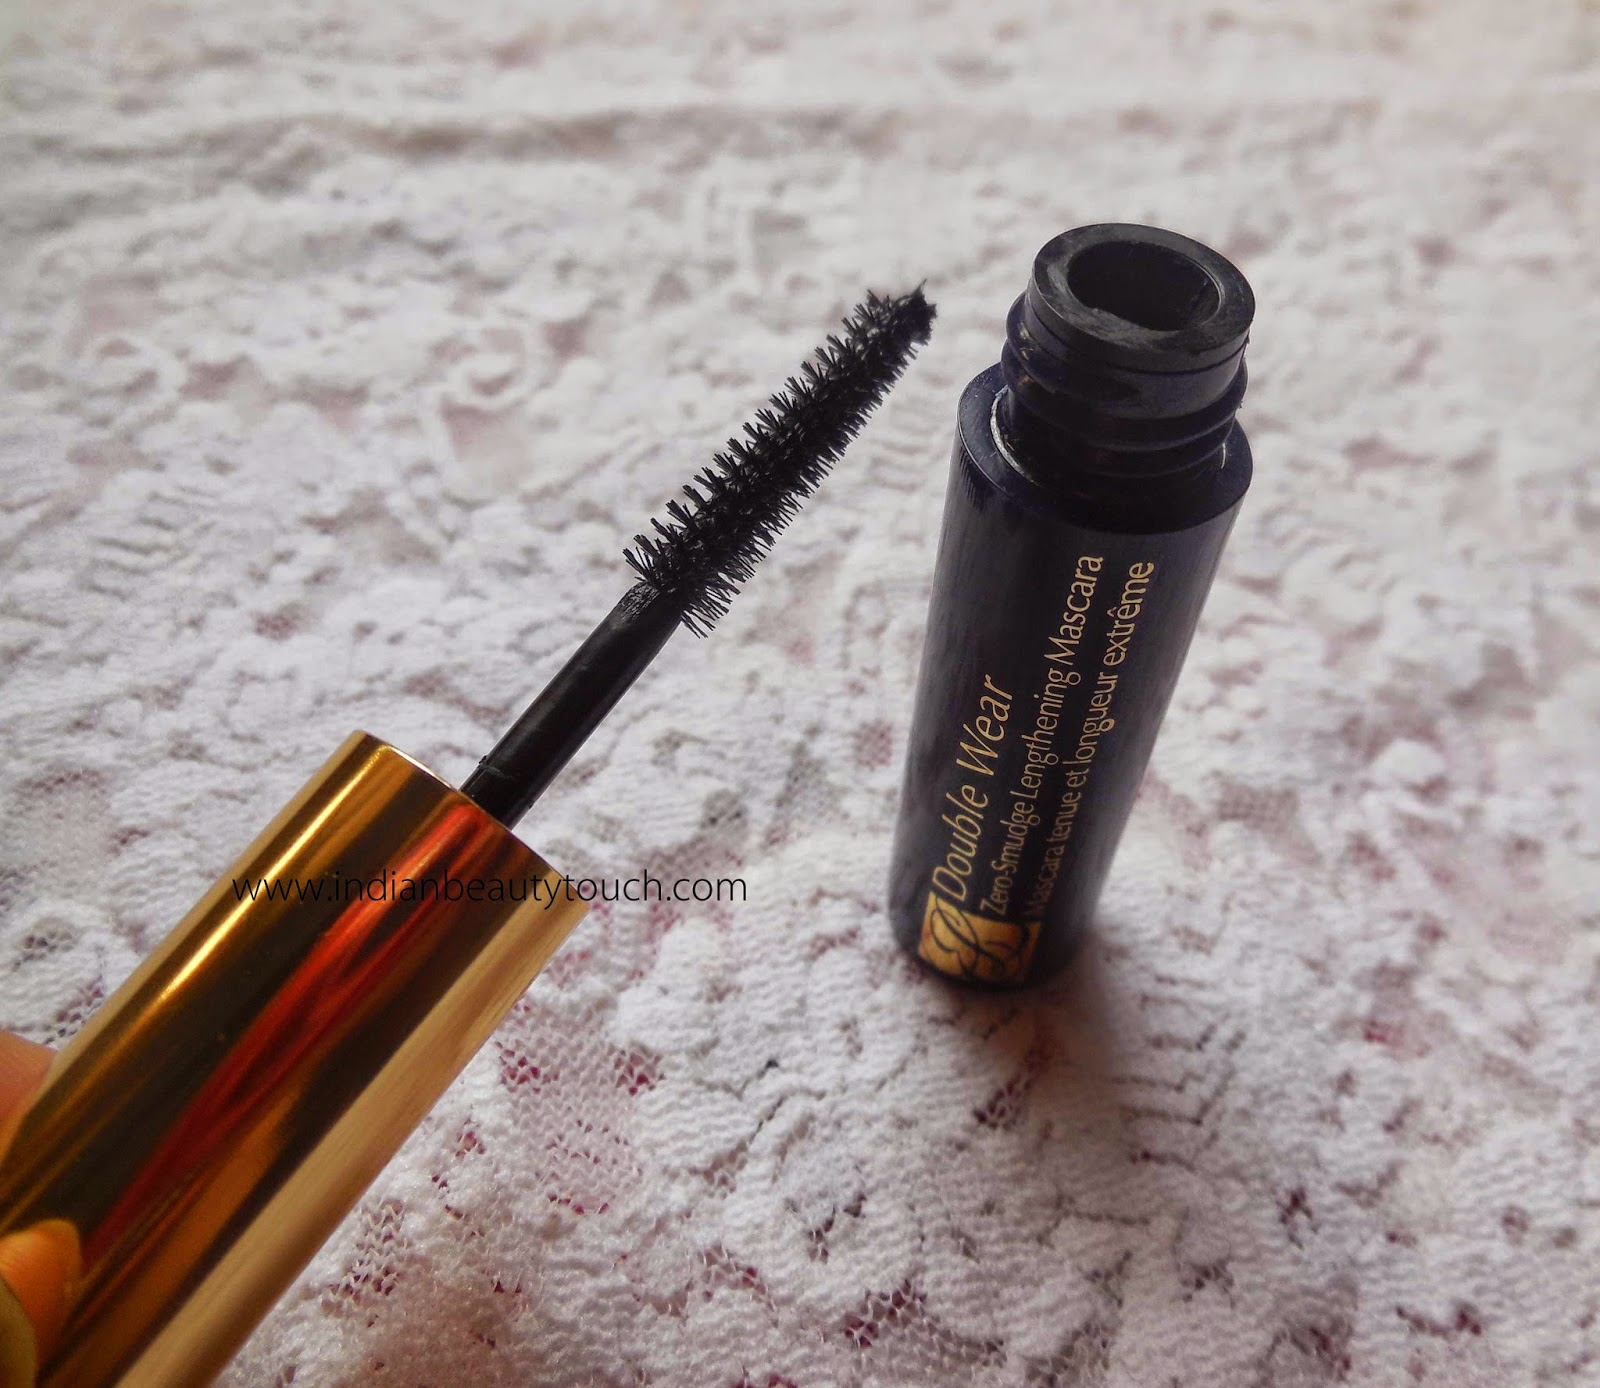 Estee Lauder Double Wear Zero Smudge Lengthening Mascara Review